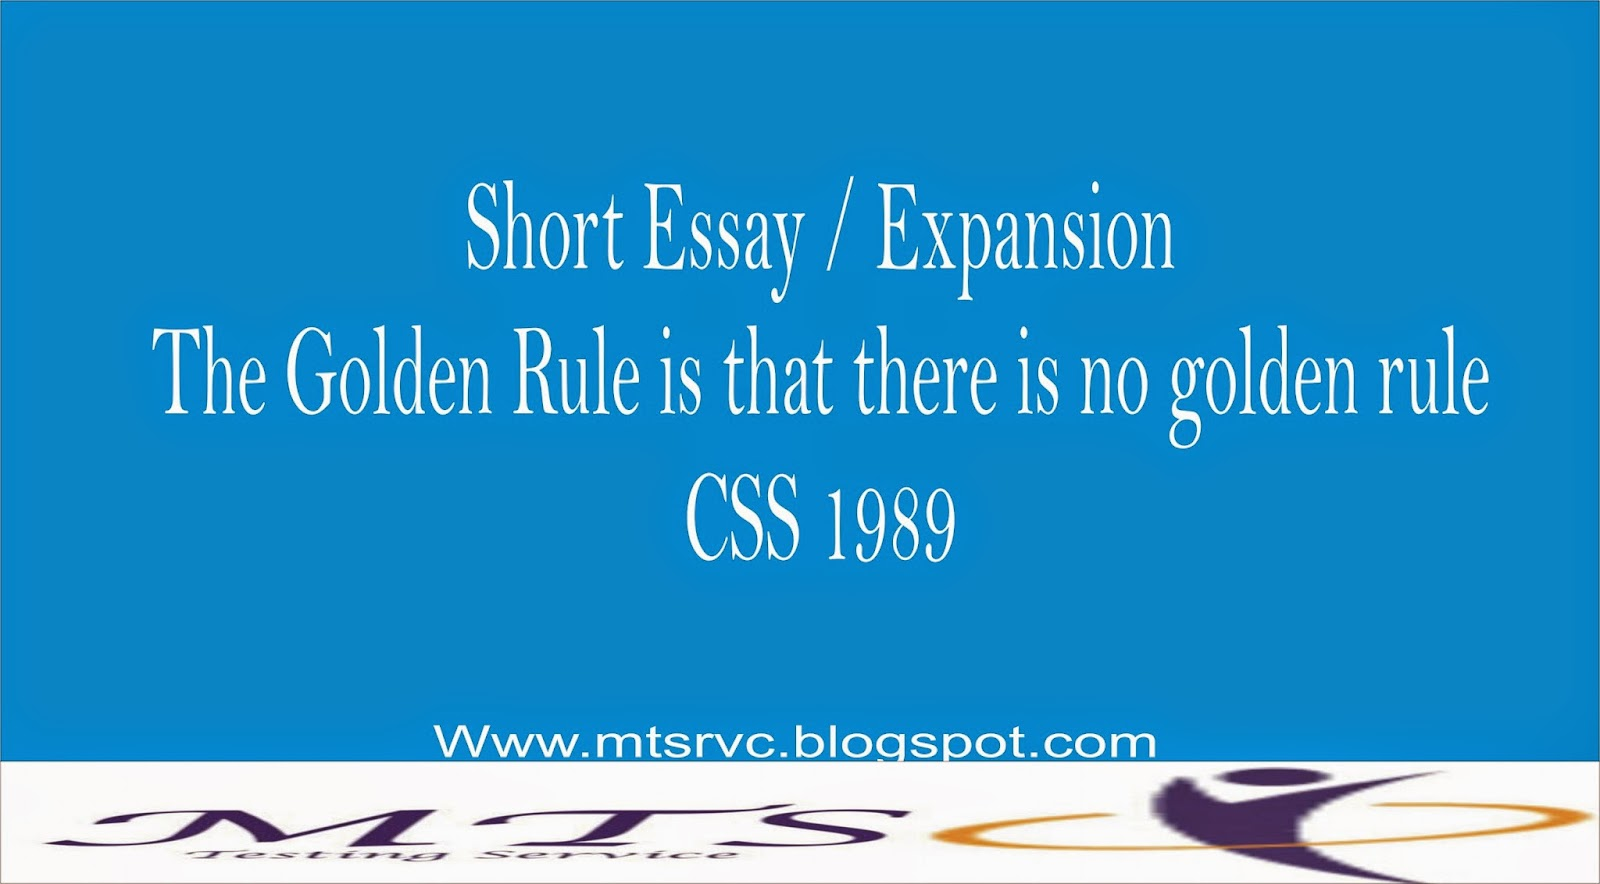 golden rule essay The golden rule: not so golden anymore stephen anderson analyses as he would be analysed for example, in 'a short essay on the golden rule'.